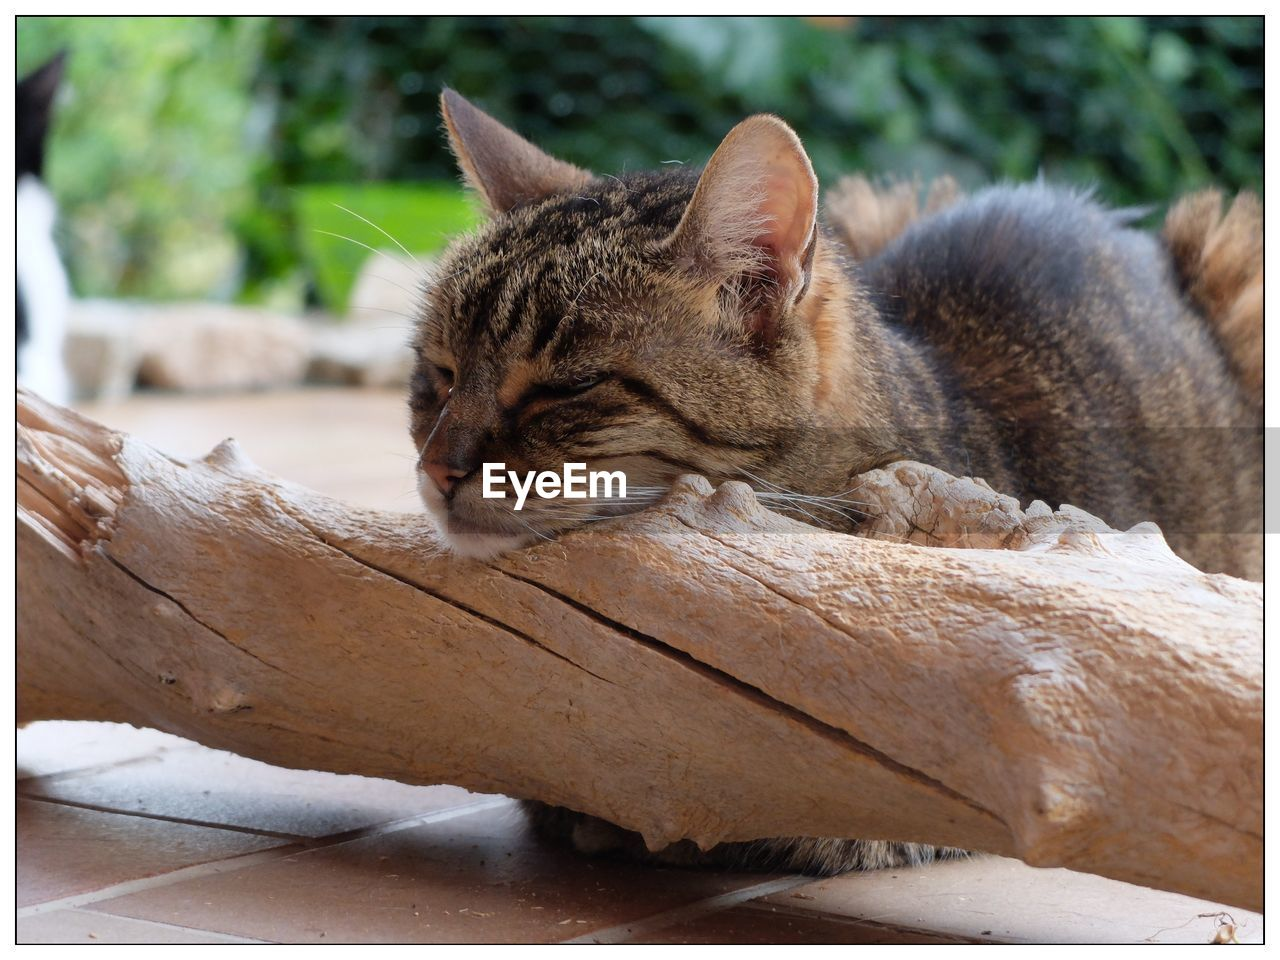 mammal, animal themes, one animal, cat, feline, animal, pets, domestic animals, domestic, domestic cat, vertebrate, relaxation, transfer print, auto post production filter, focus on foreground, no people, resting, day, close-up, eyes closed, whisker, animal head